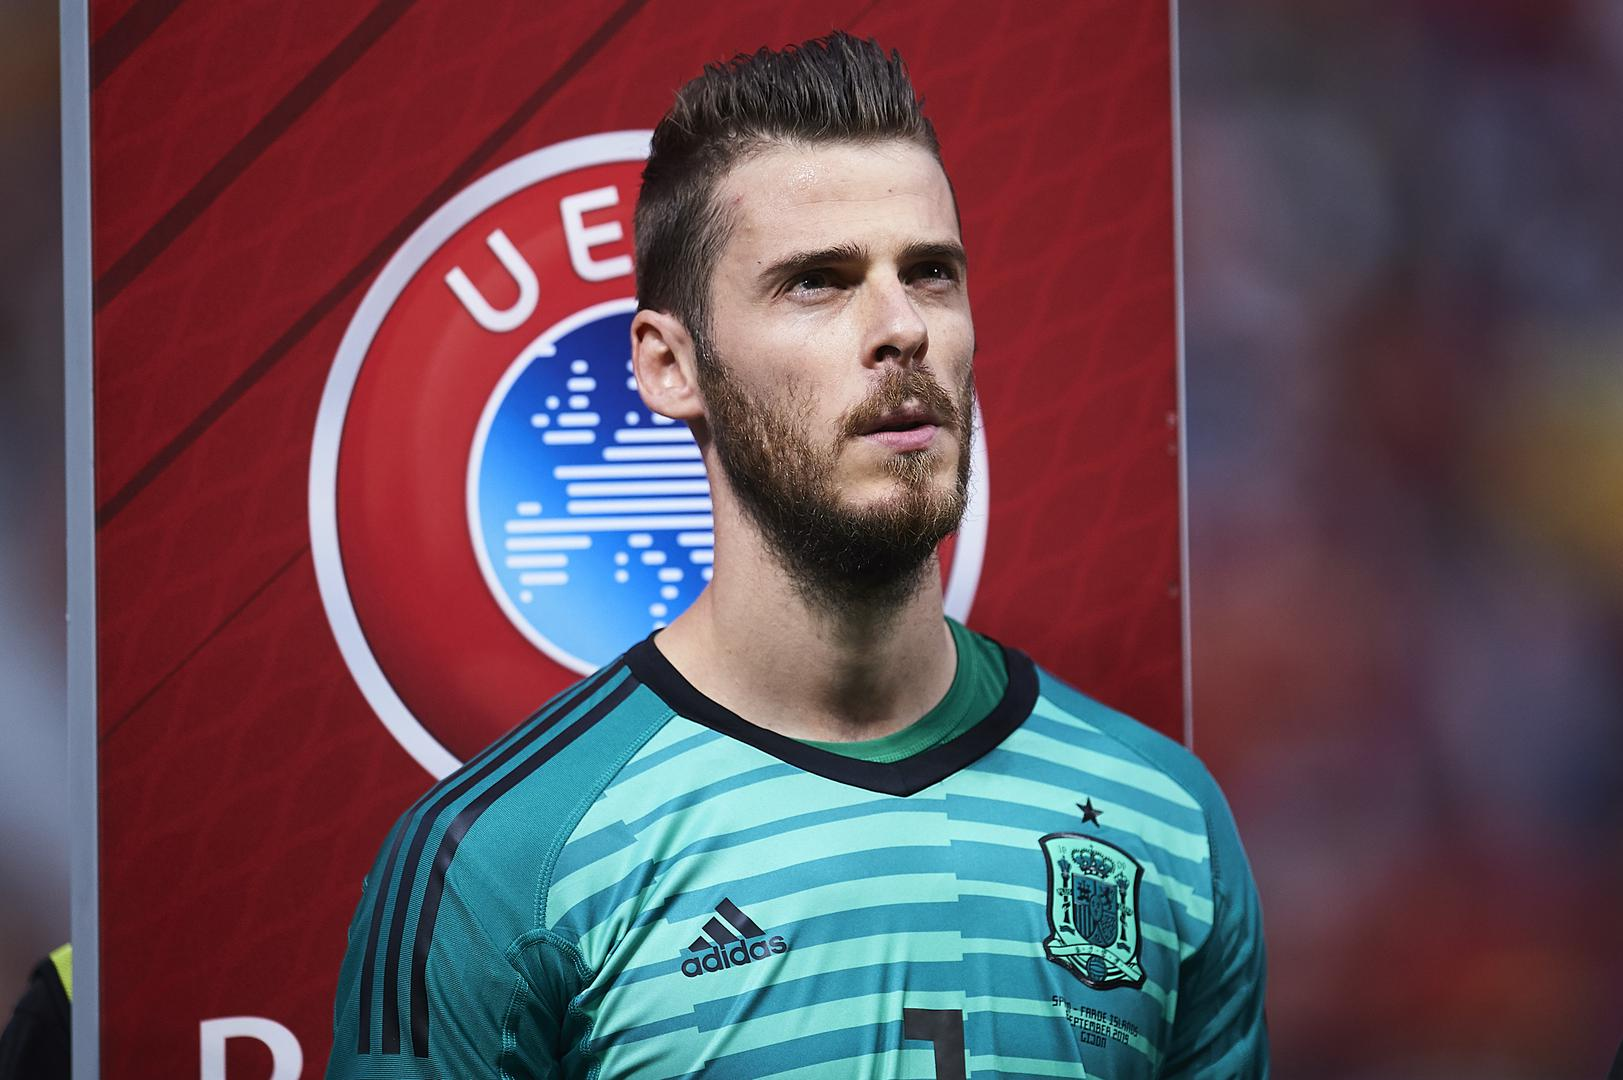 David De Gea on international duty for Spain